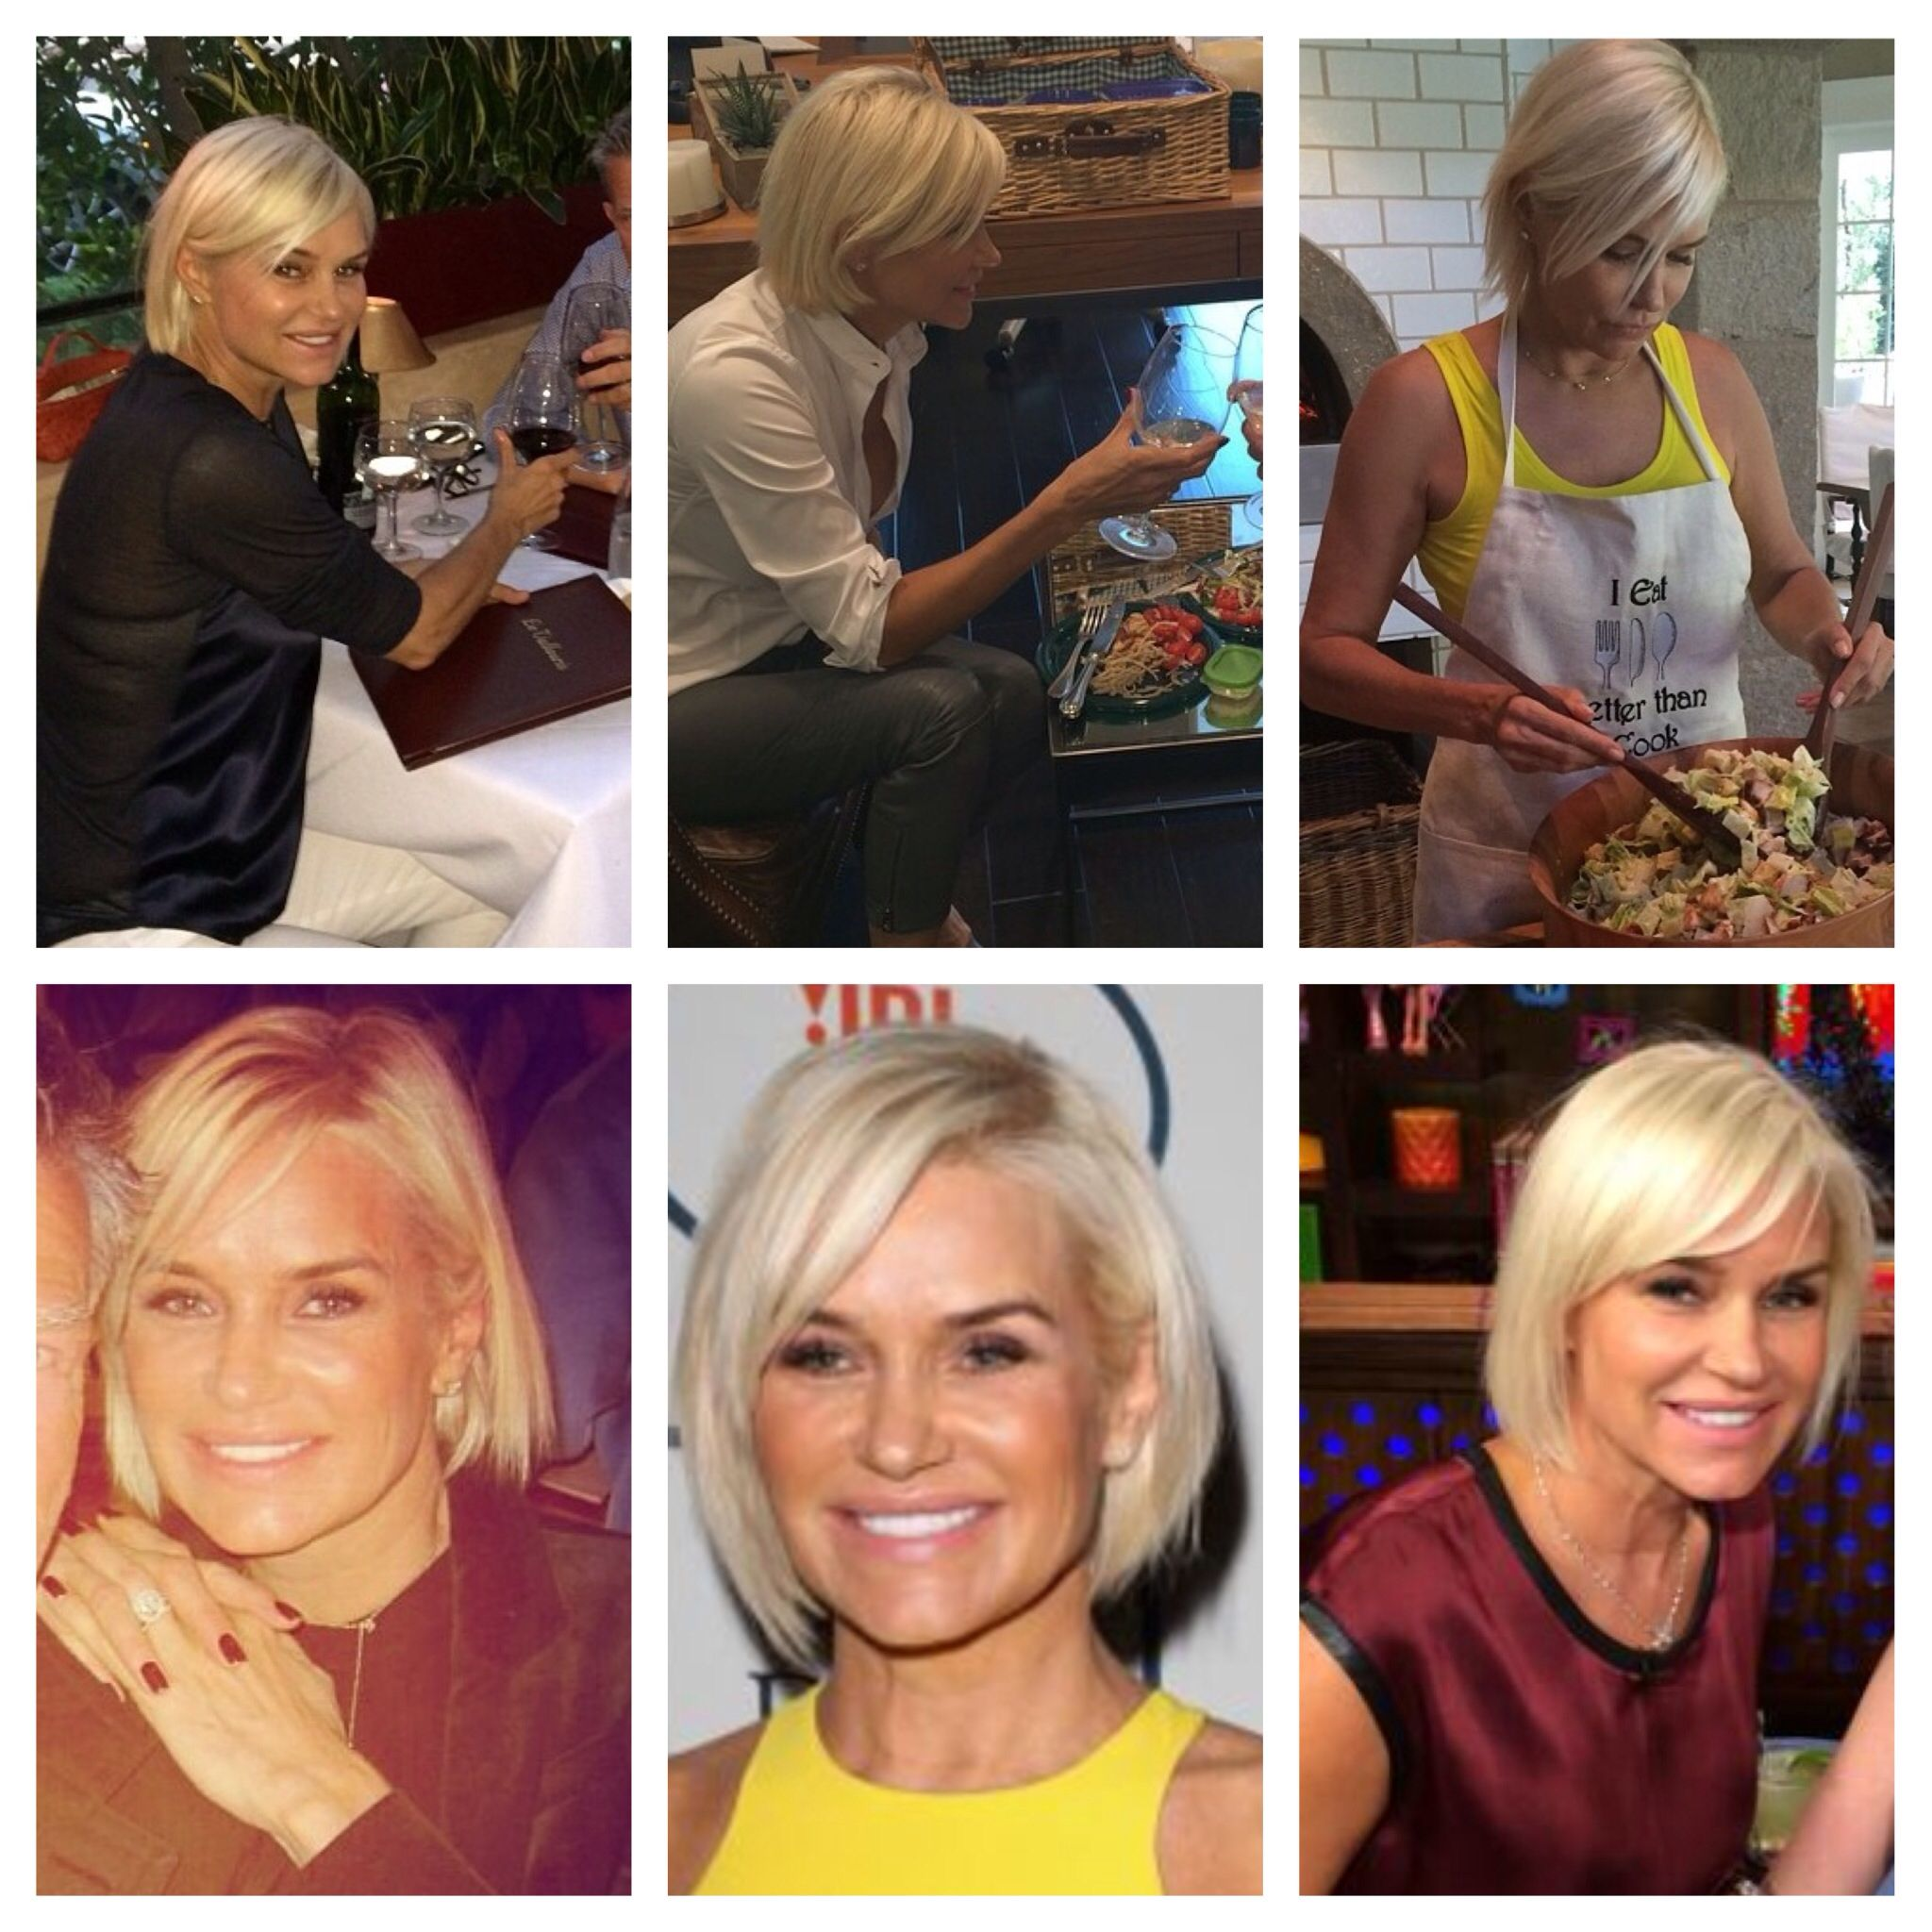 Yolanda foster I really admire this woman how she raised her kids